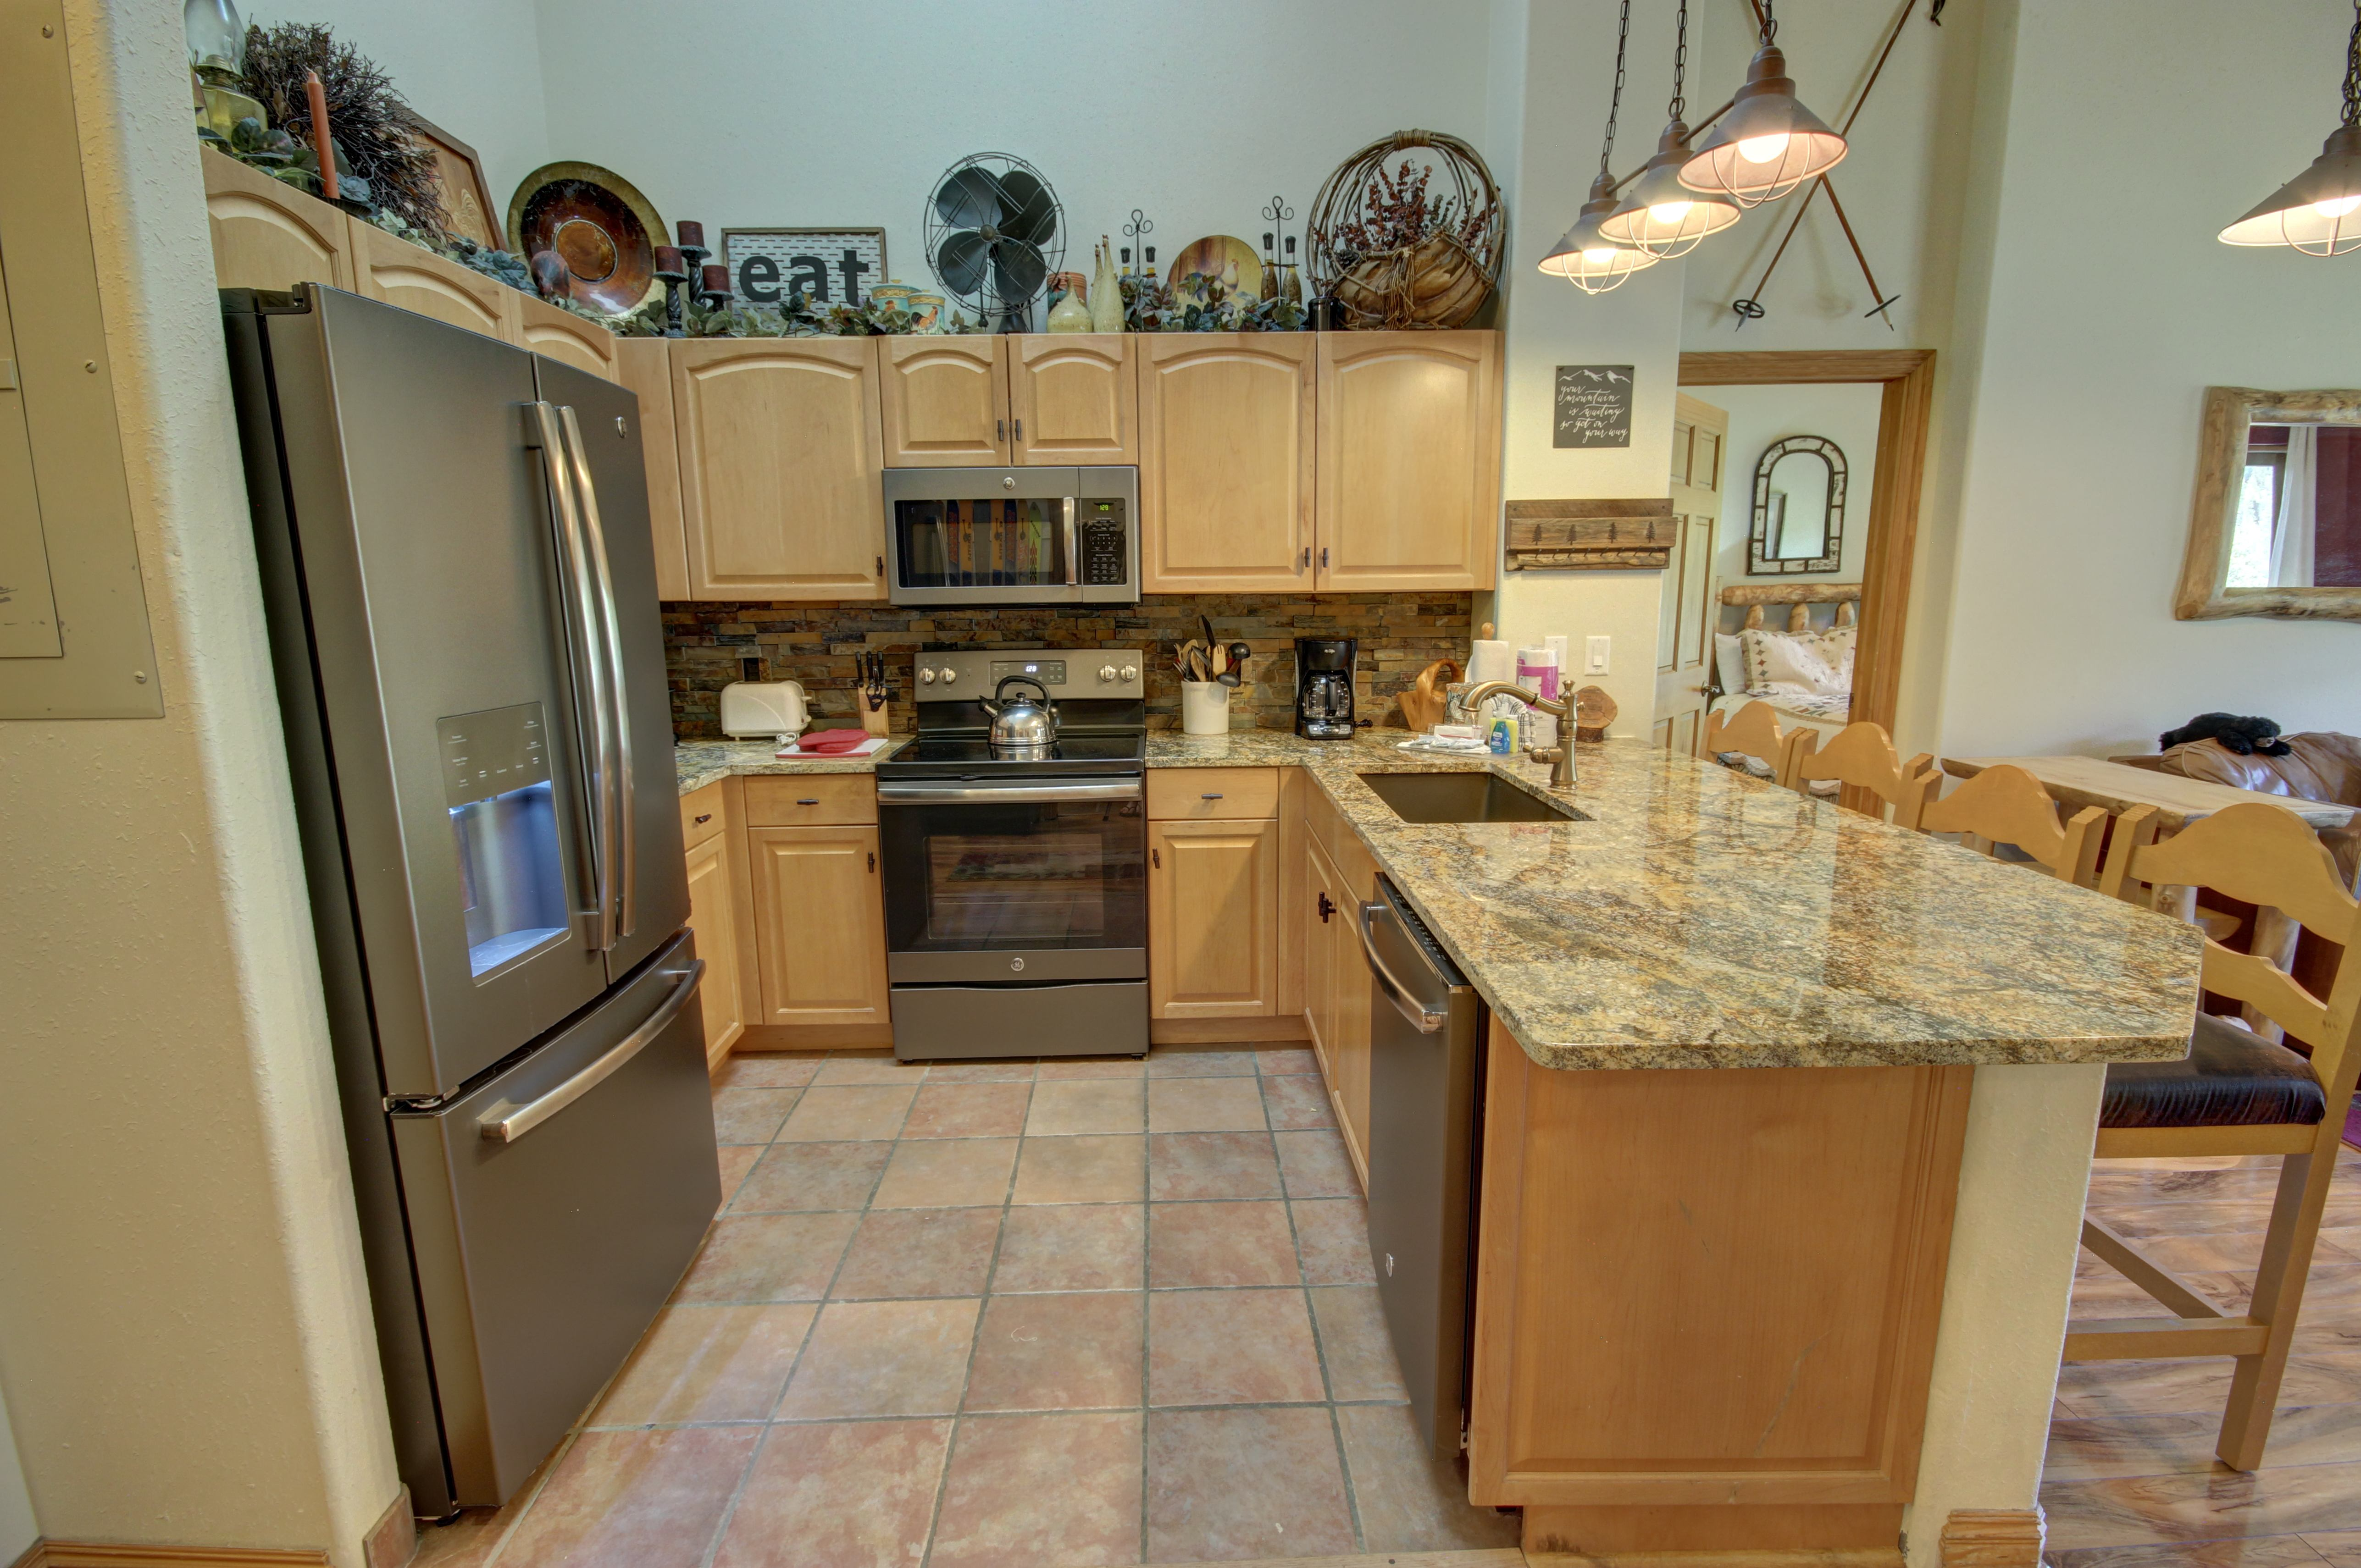 Nice open kitchen with plenty of space for cooking